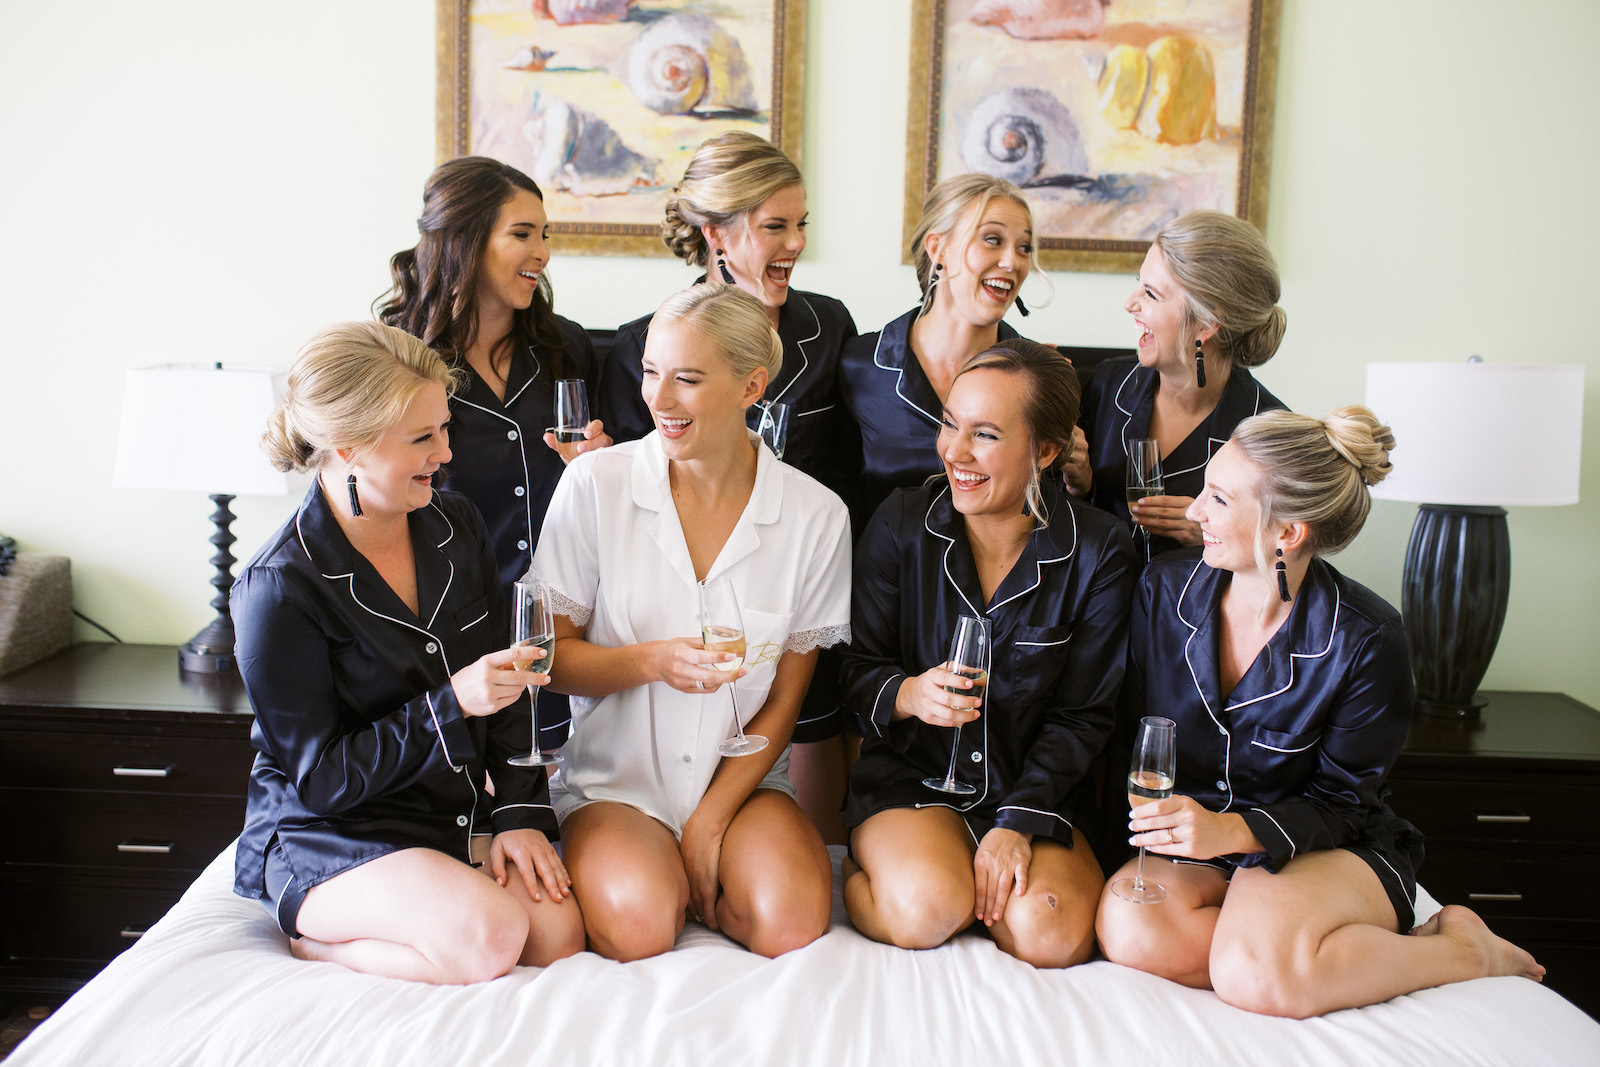 Tampa Bride and Bridesmaids in Matching Navy Blue Robes Drinking Champagne Getting Wedding Ready Hotel Bed Portrait